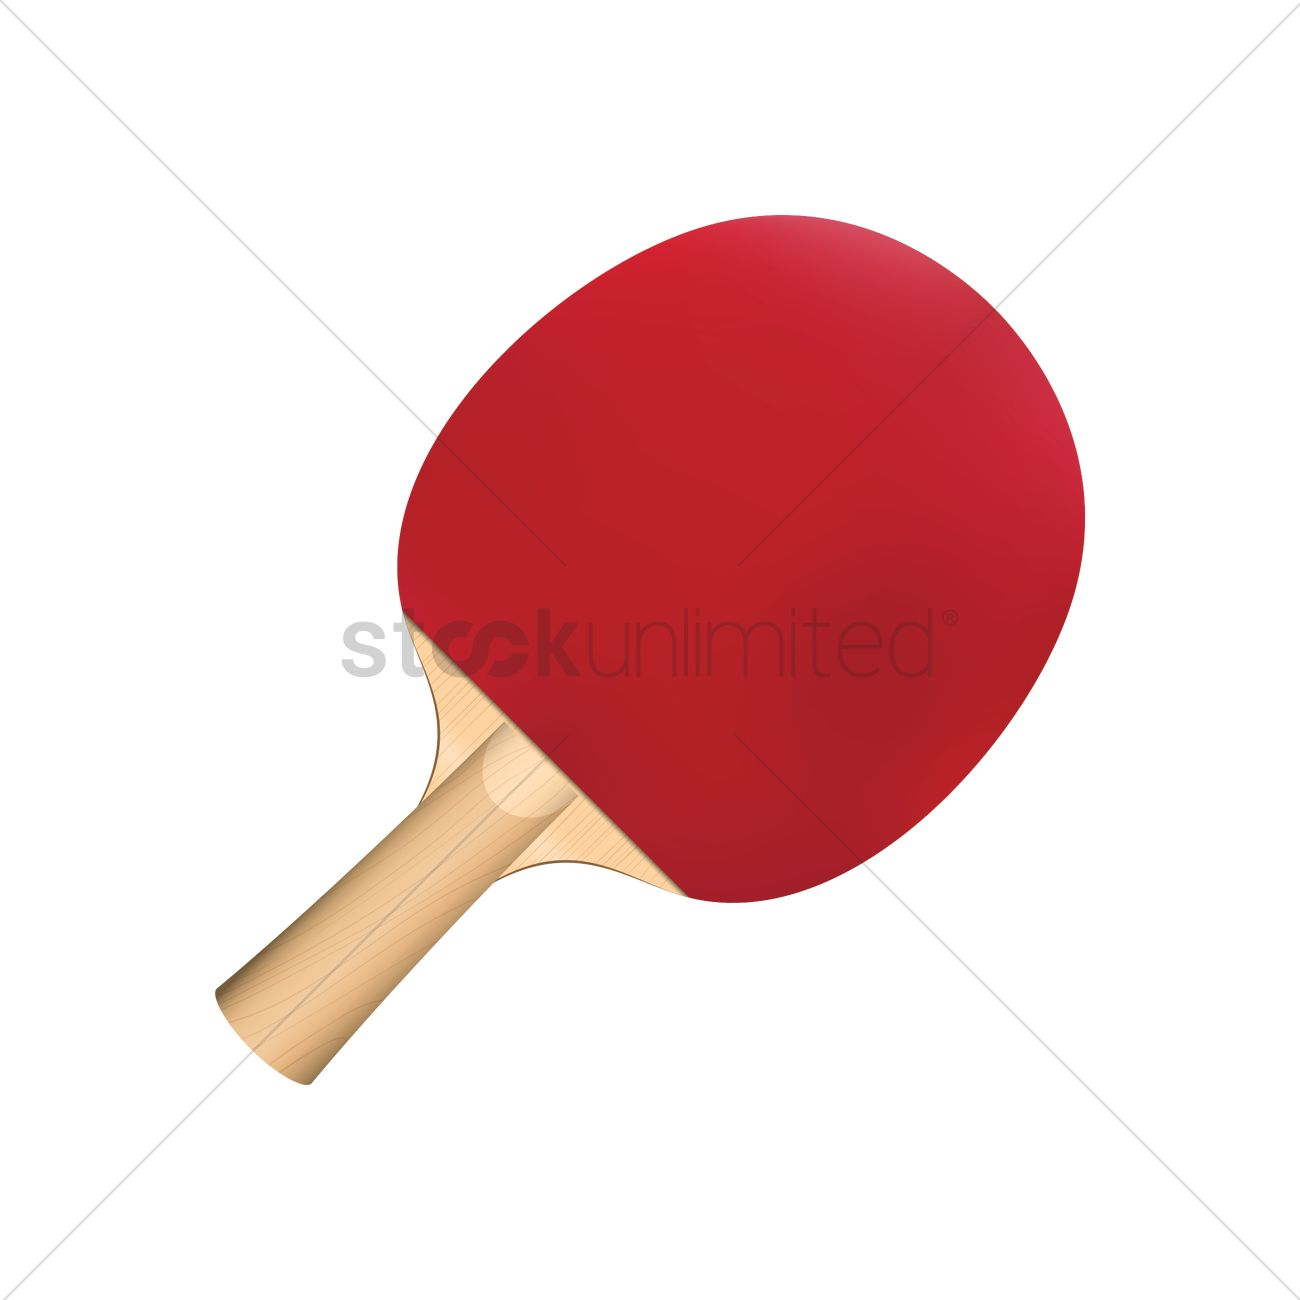 Table Tennis Racket Png - Table tennis bat vector graphic